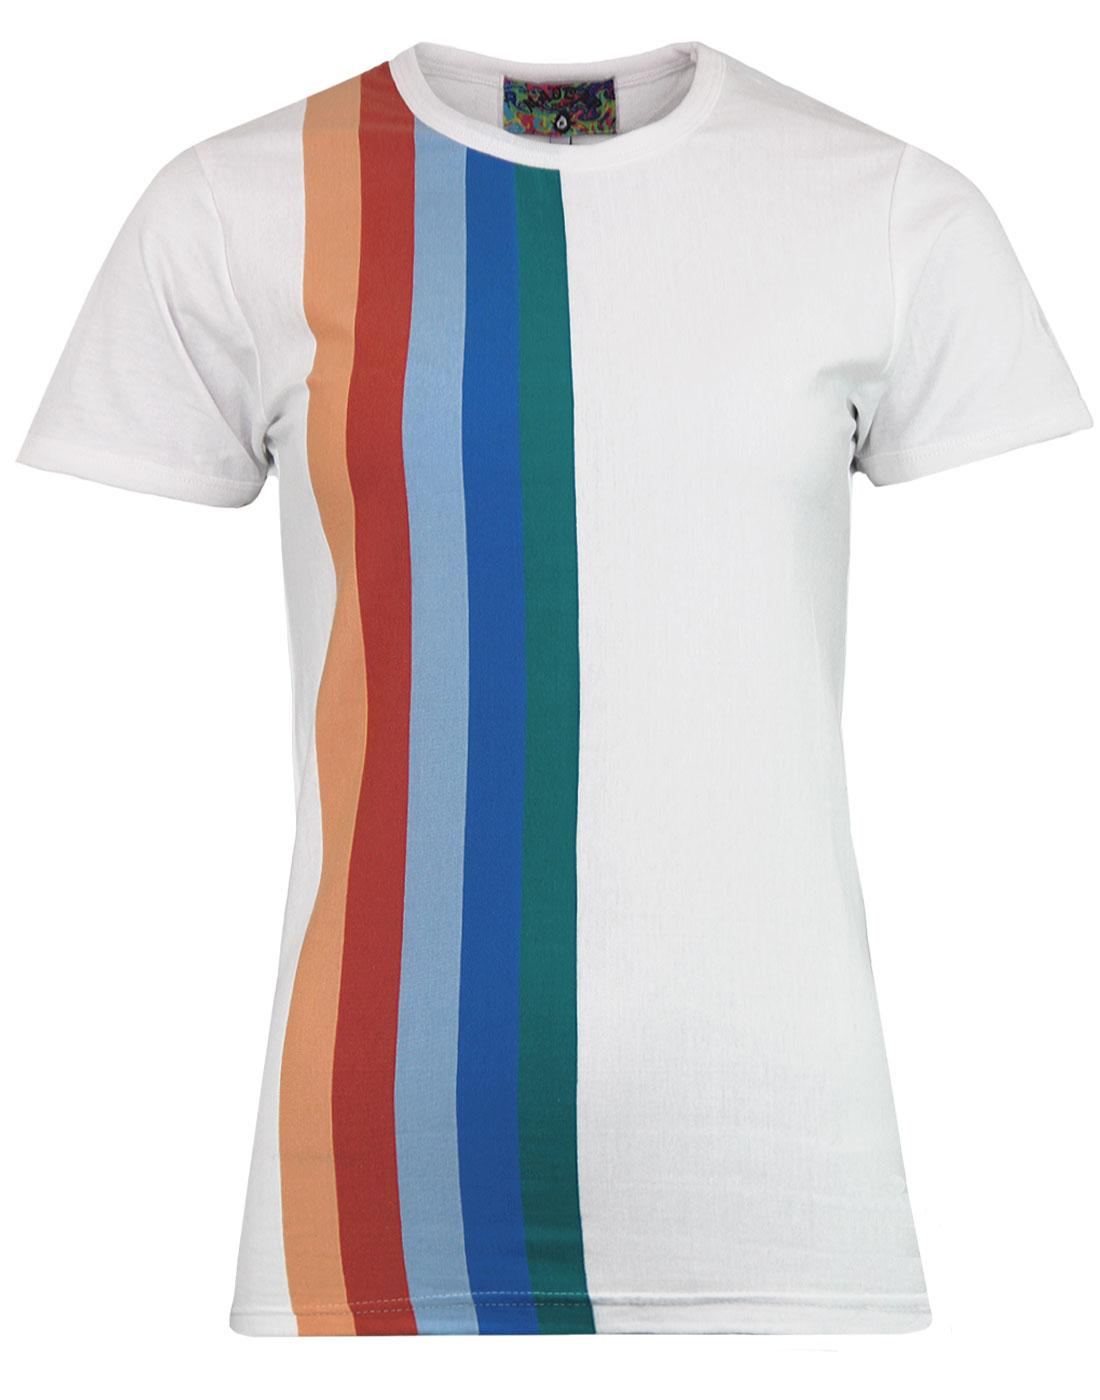 madcap england over the rainbow retro 70s t-shirt